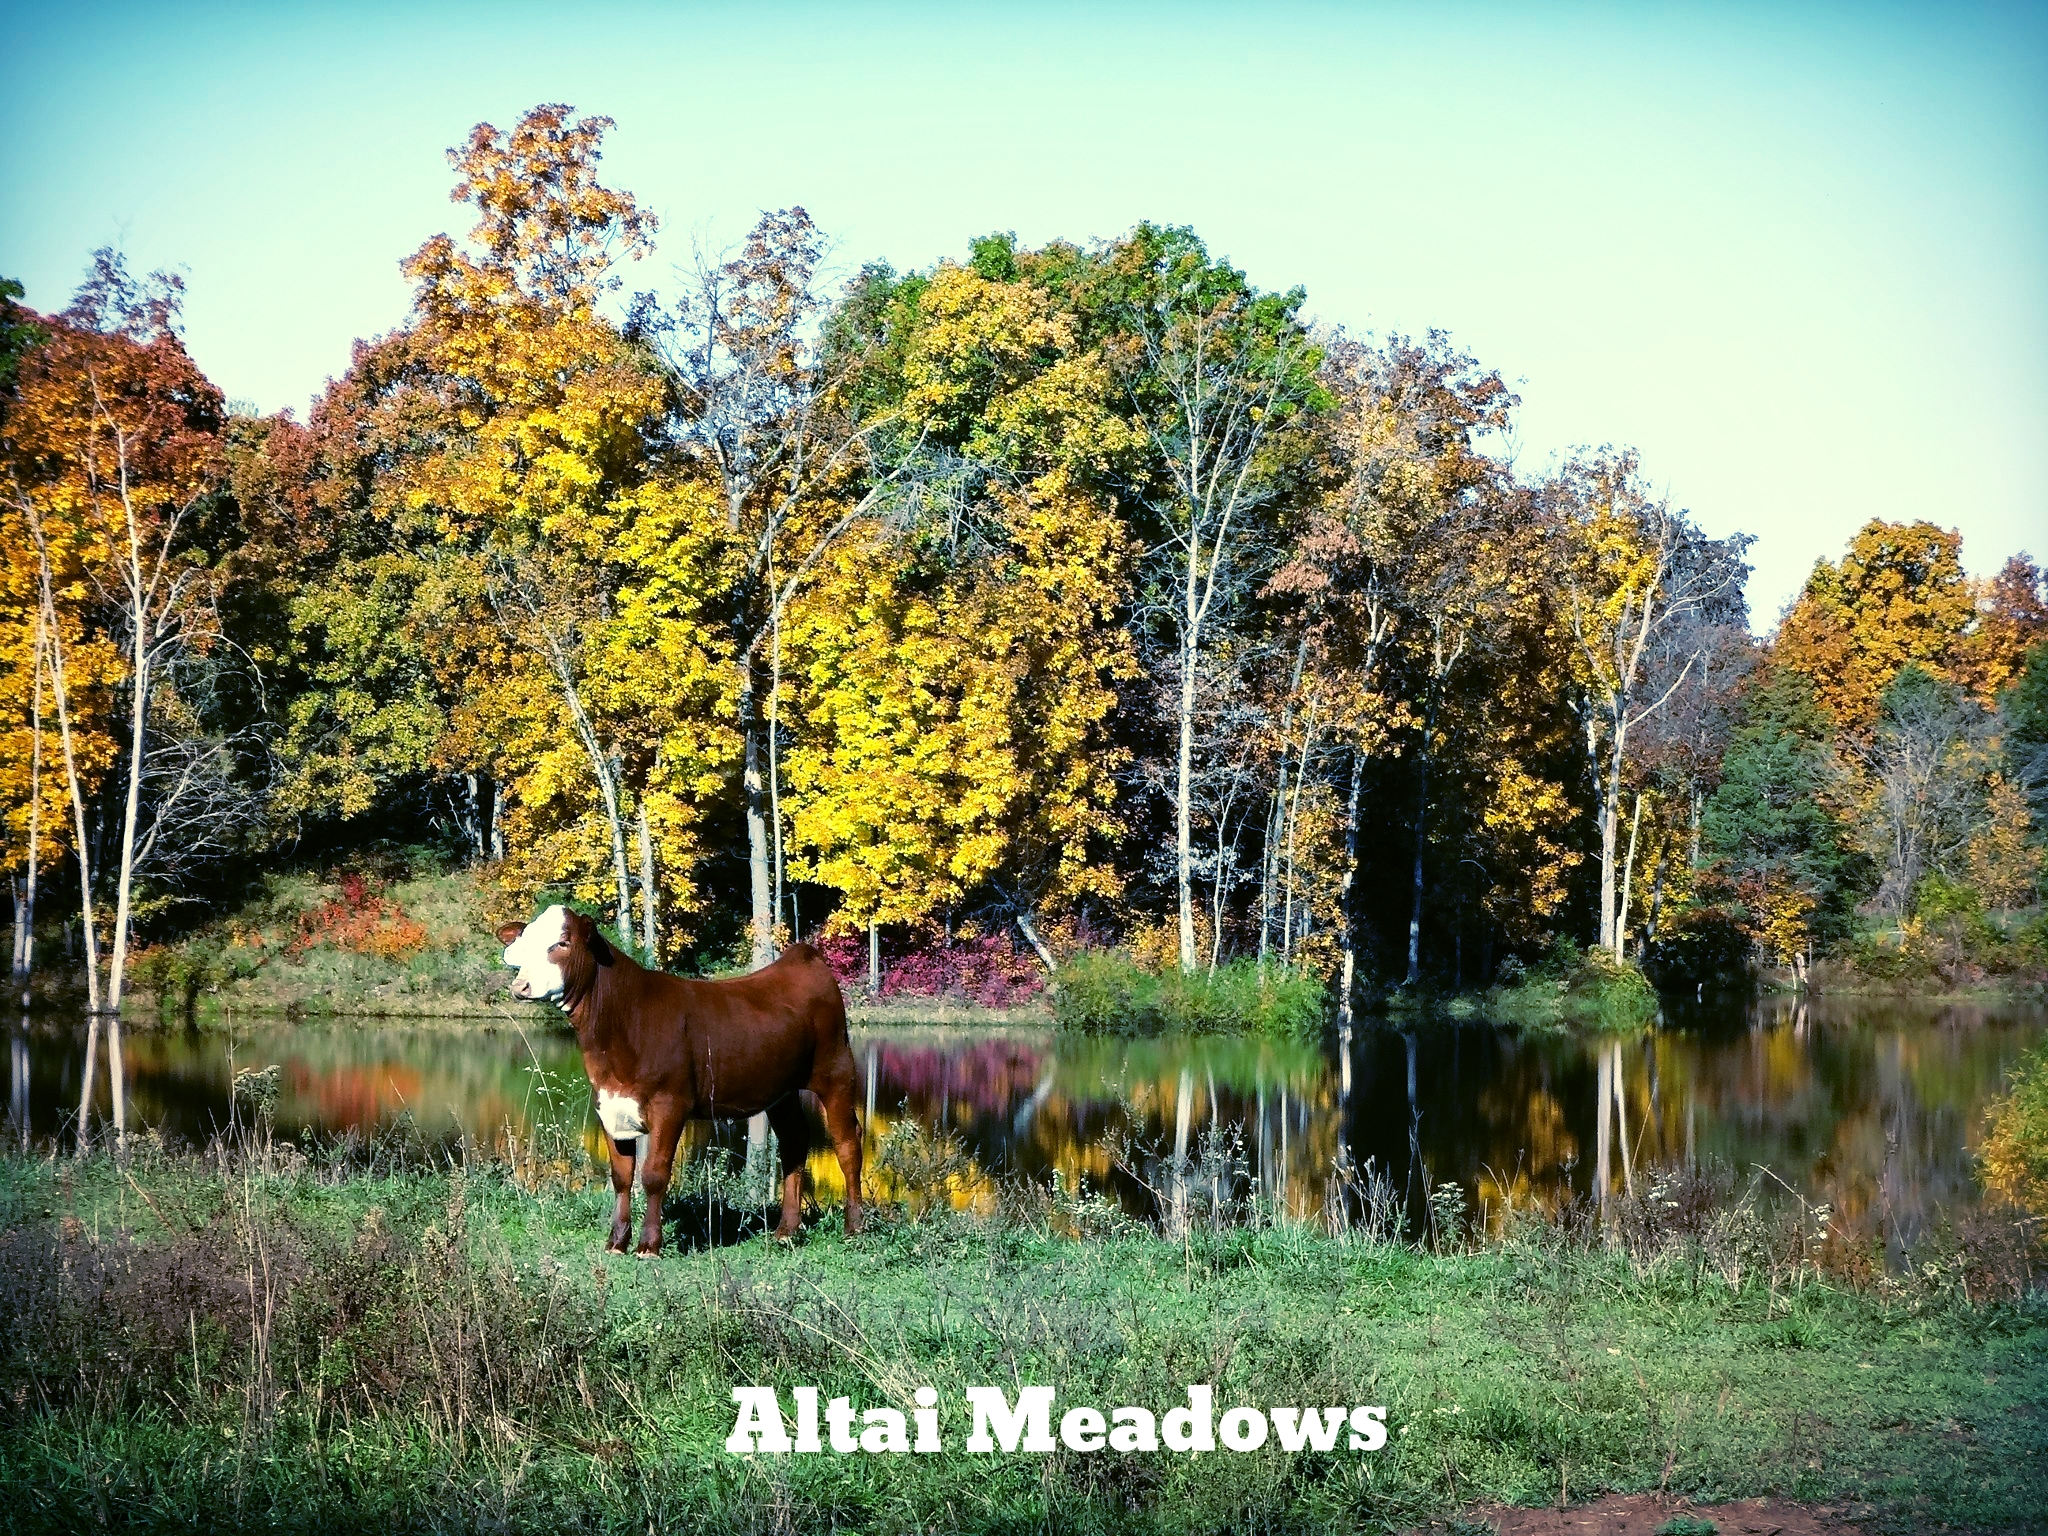 Used with permission from Altai Meadows